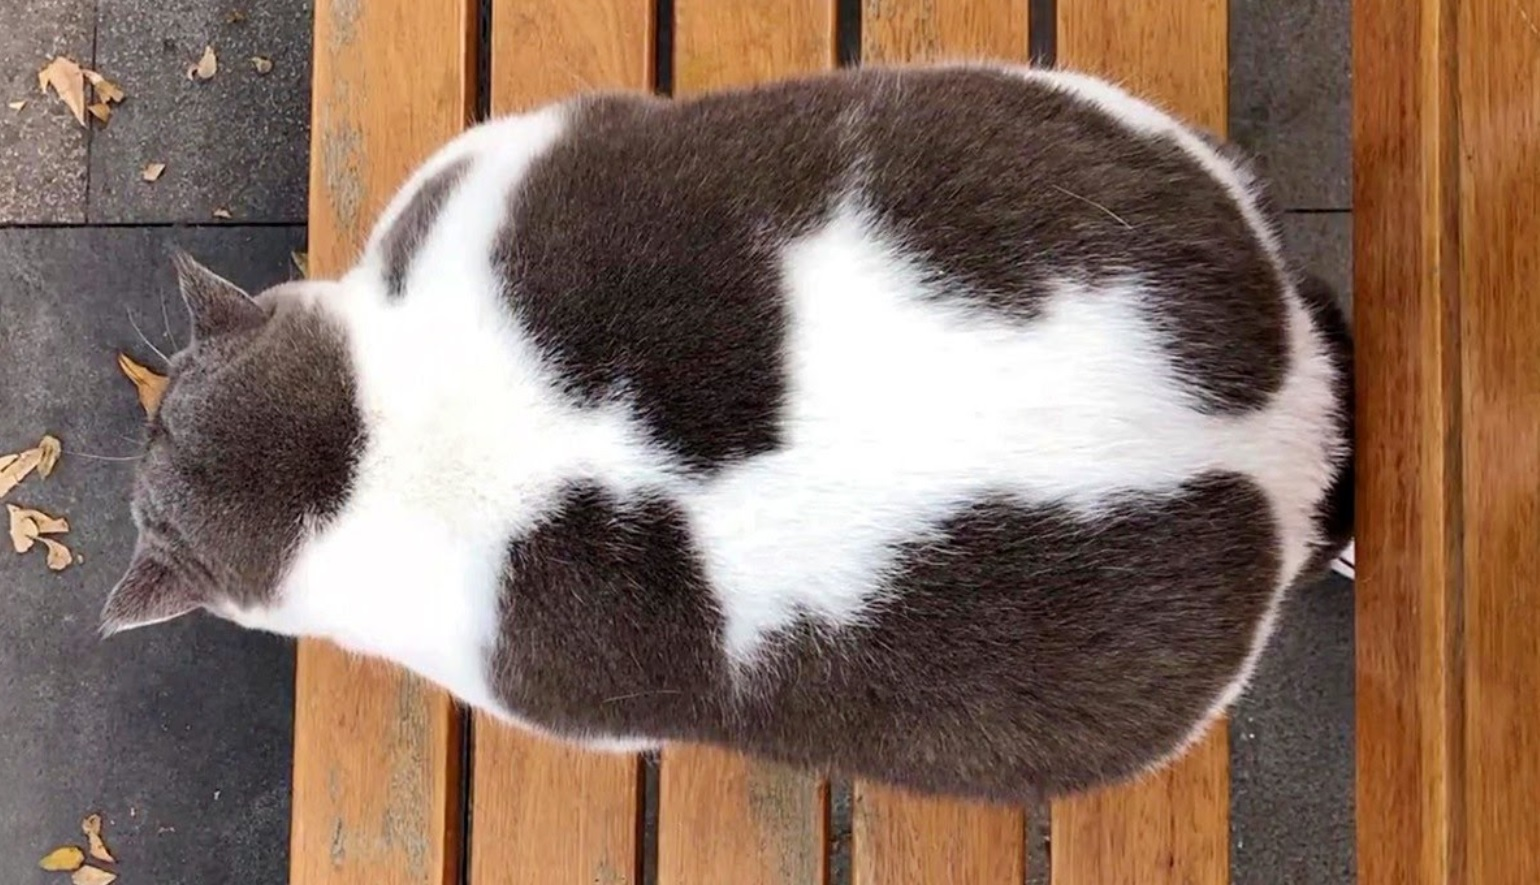 Adorable Chonky Kitty